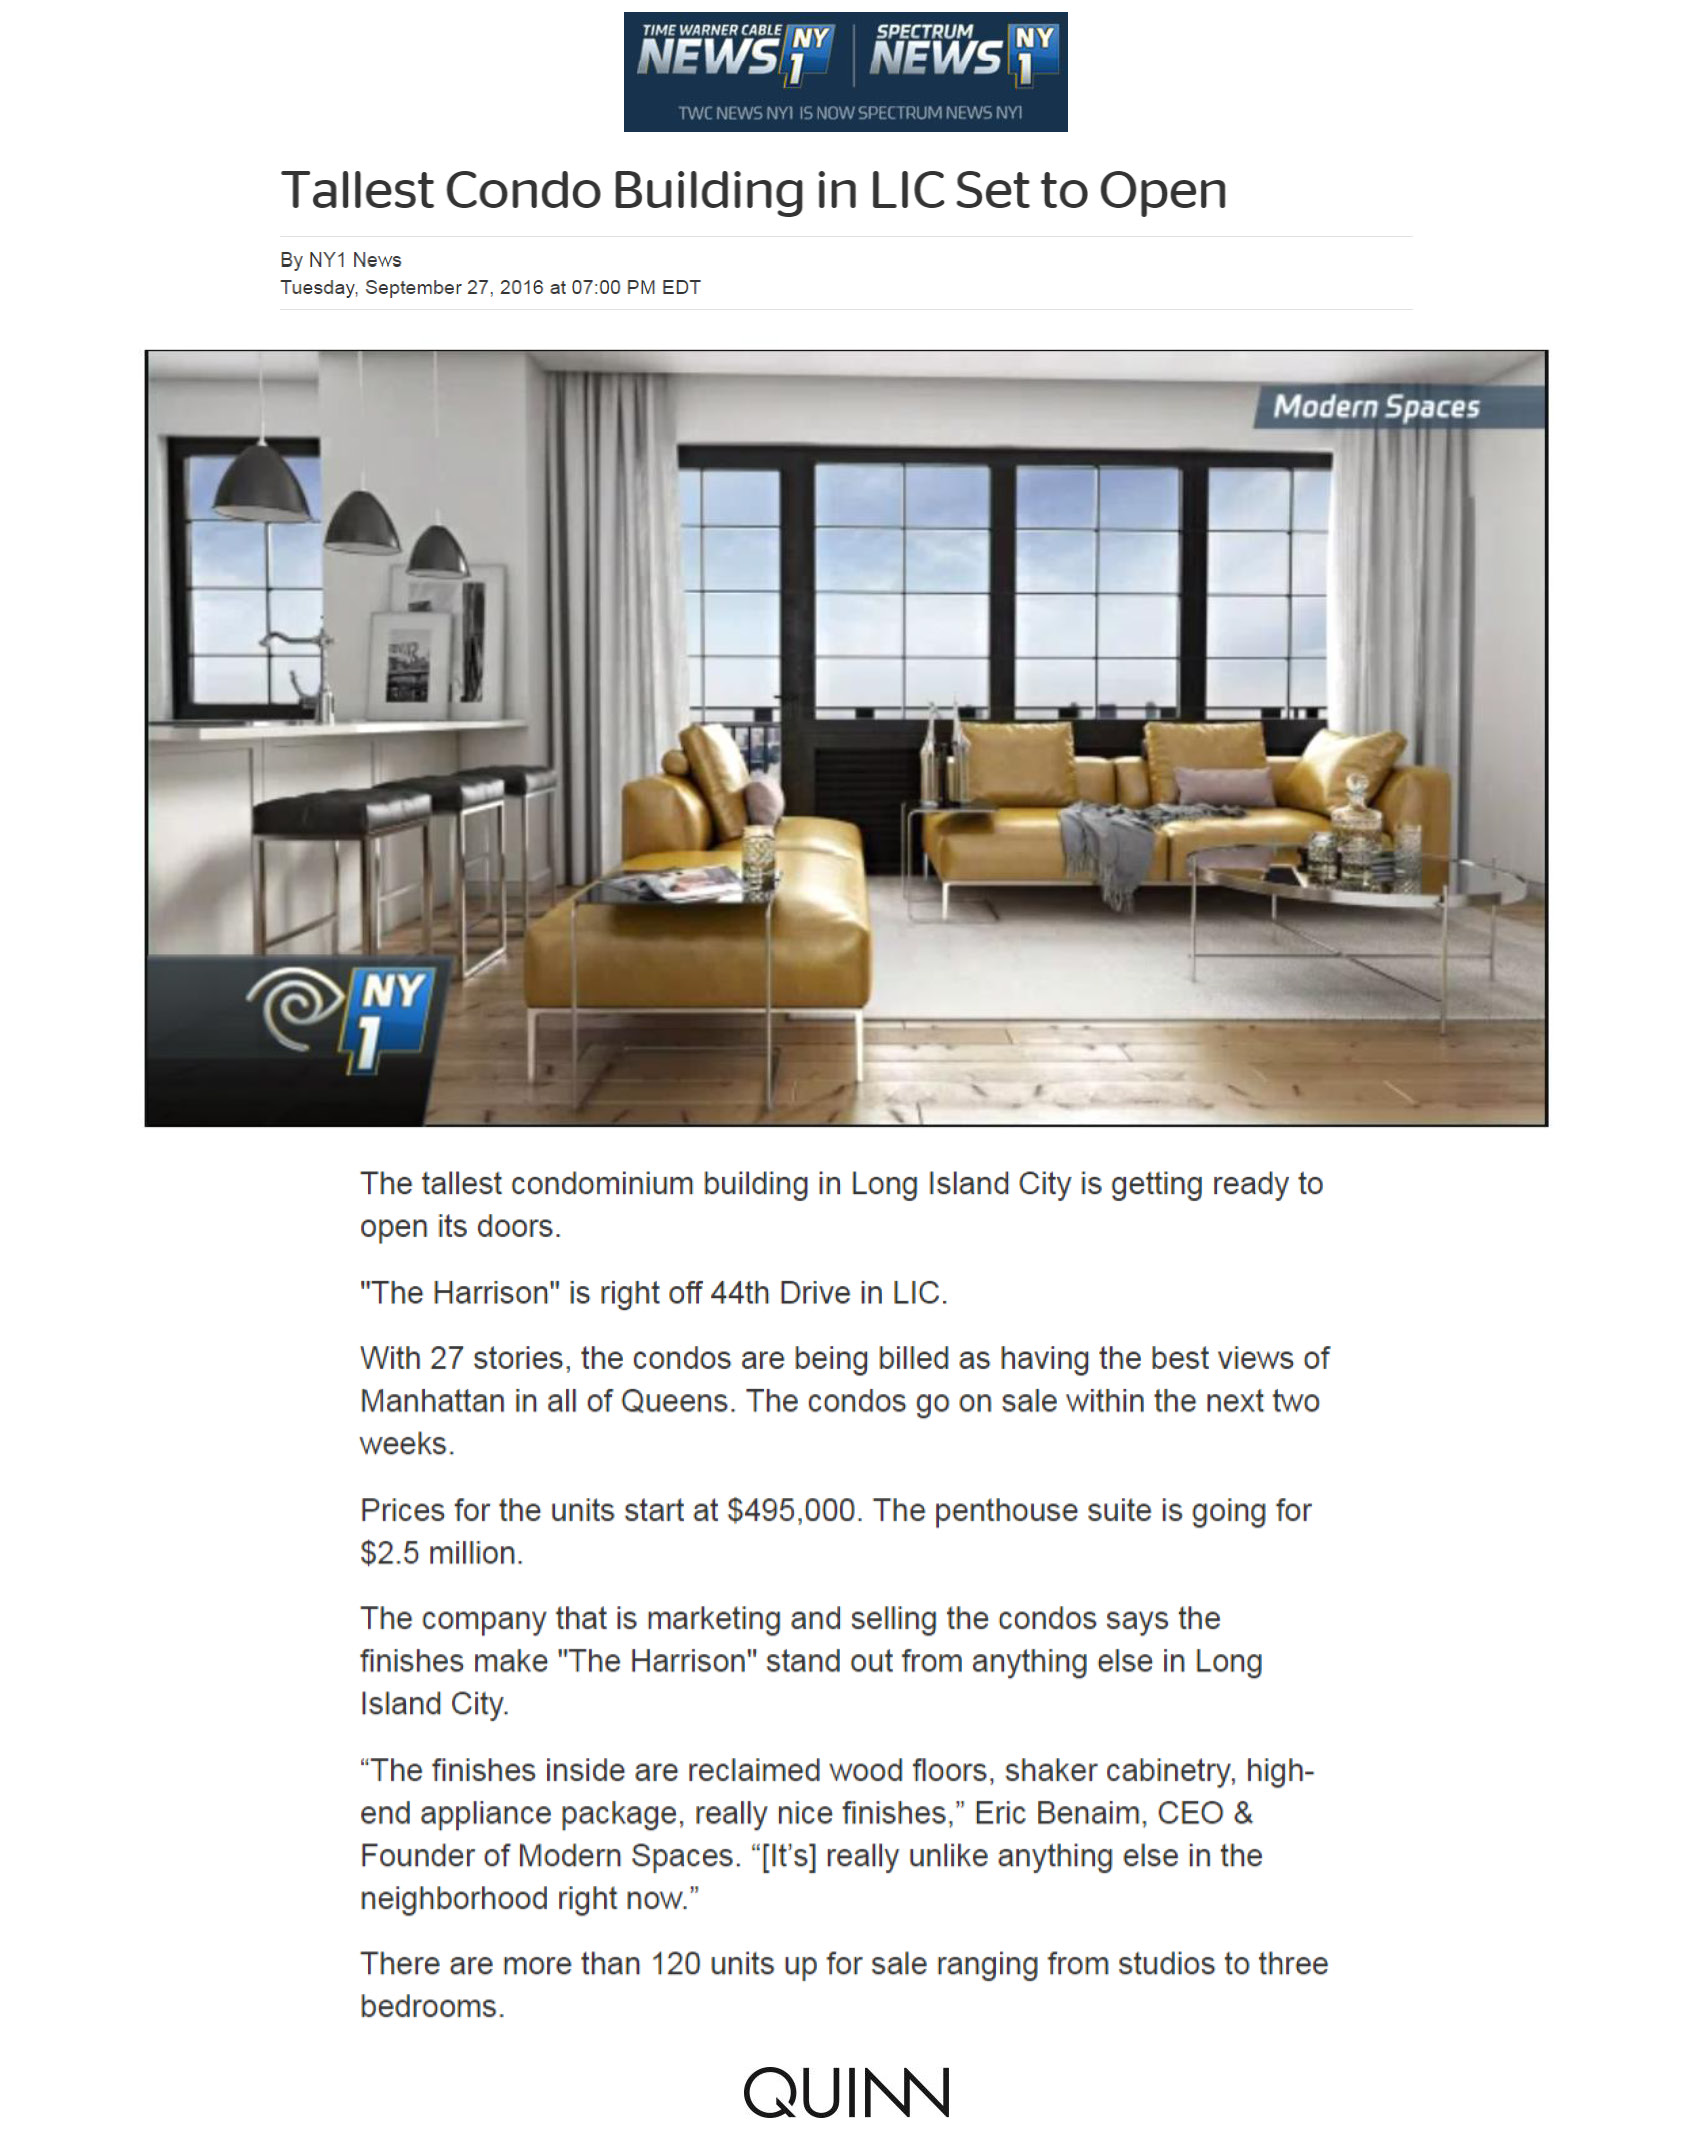 time-warner-cable-news-ny1-online-tallest-condo-building-in-lic-set-to-open-9-27-16-1